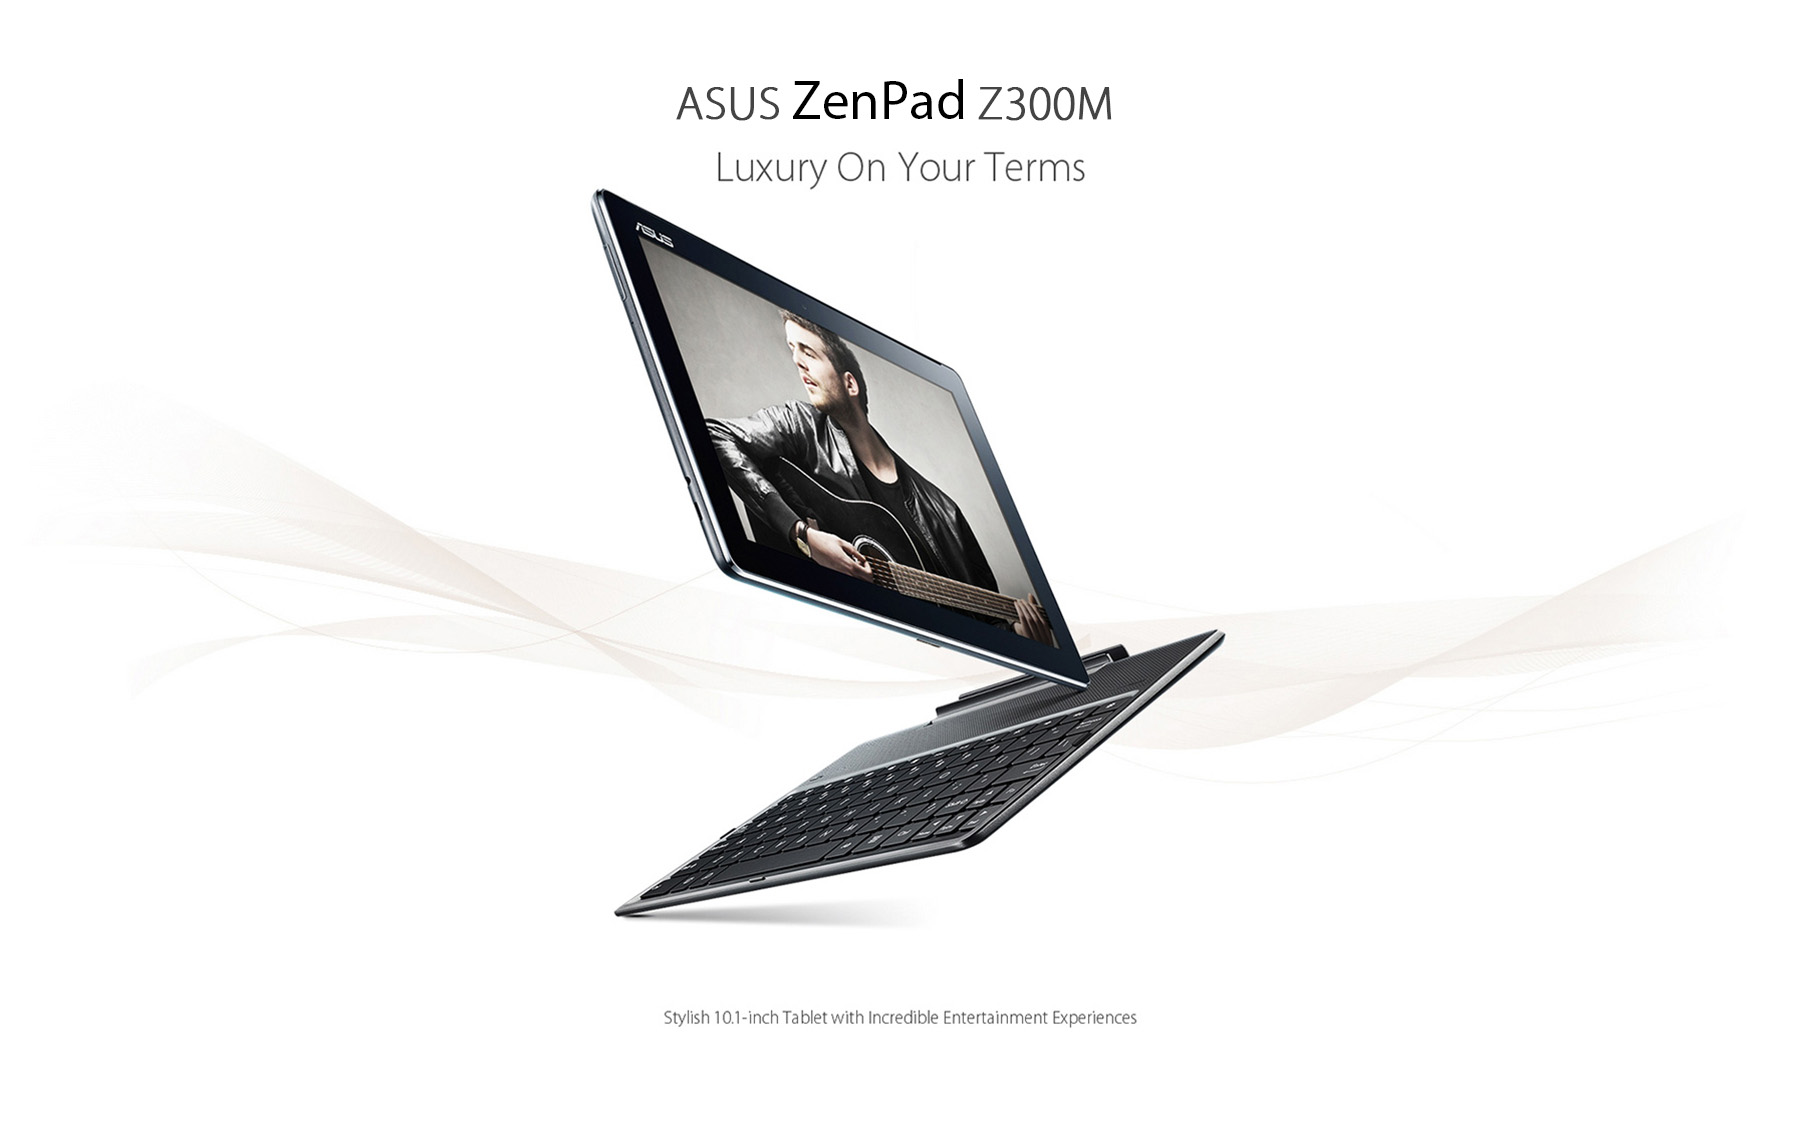 ASUS ZenPad Z300M Tablet PC 10.1 inch IPS OGS Screen Android 6.0 MTK8163 Quad Core 1.3GHz 2GB RAM 32GB ROM Ambient Light Sensor